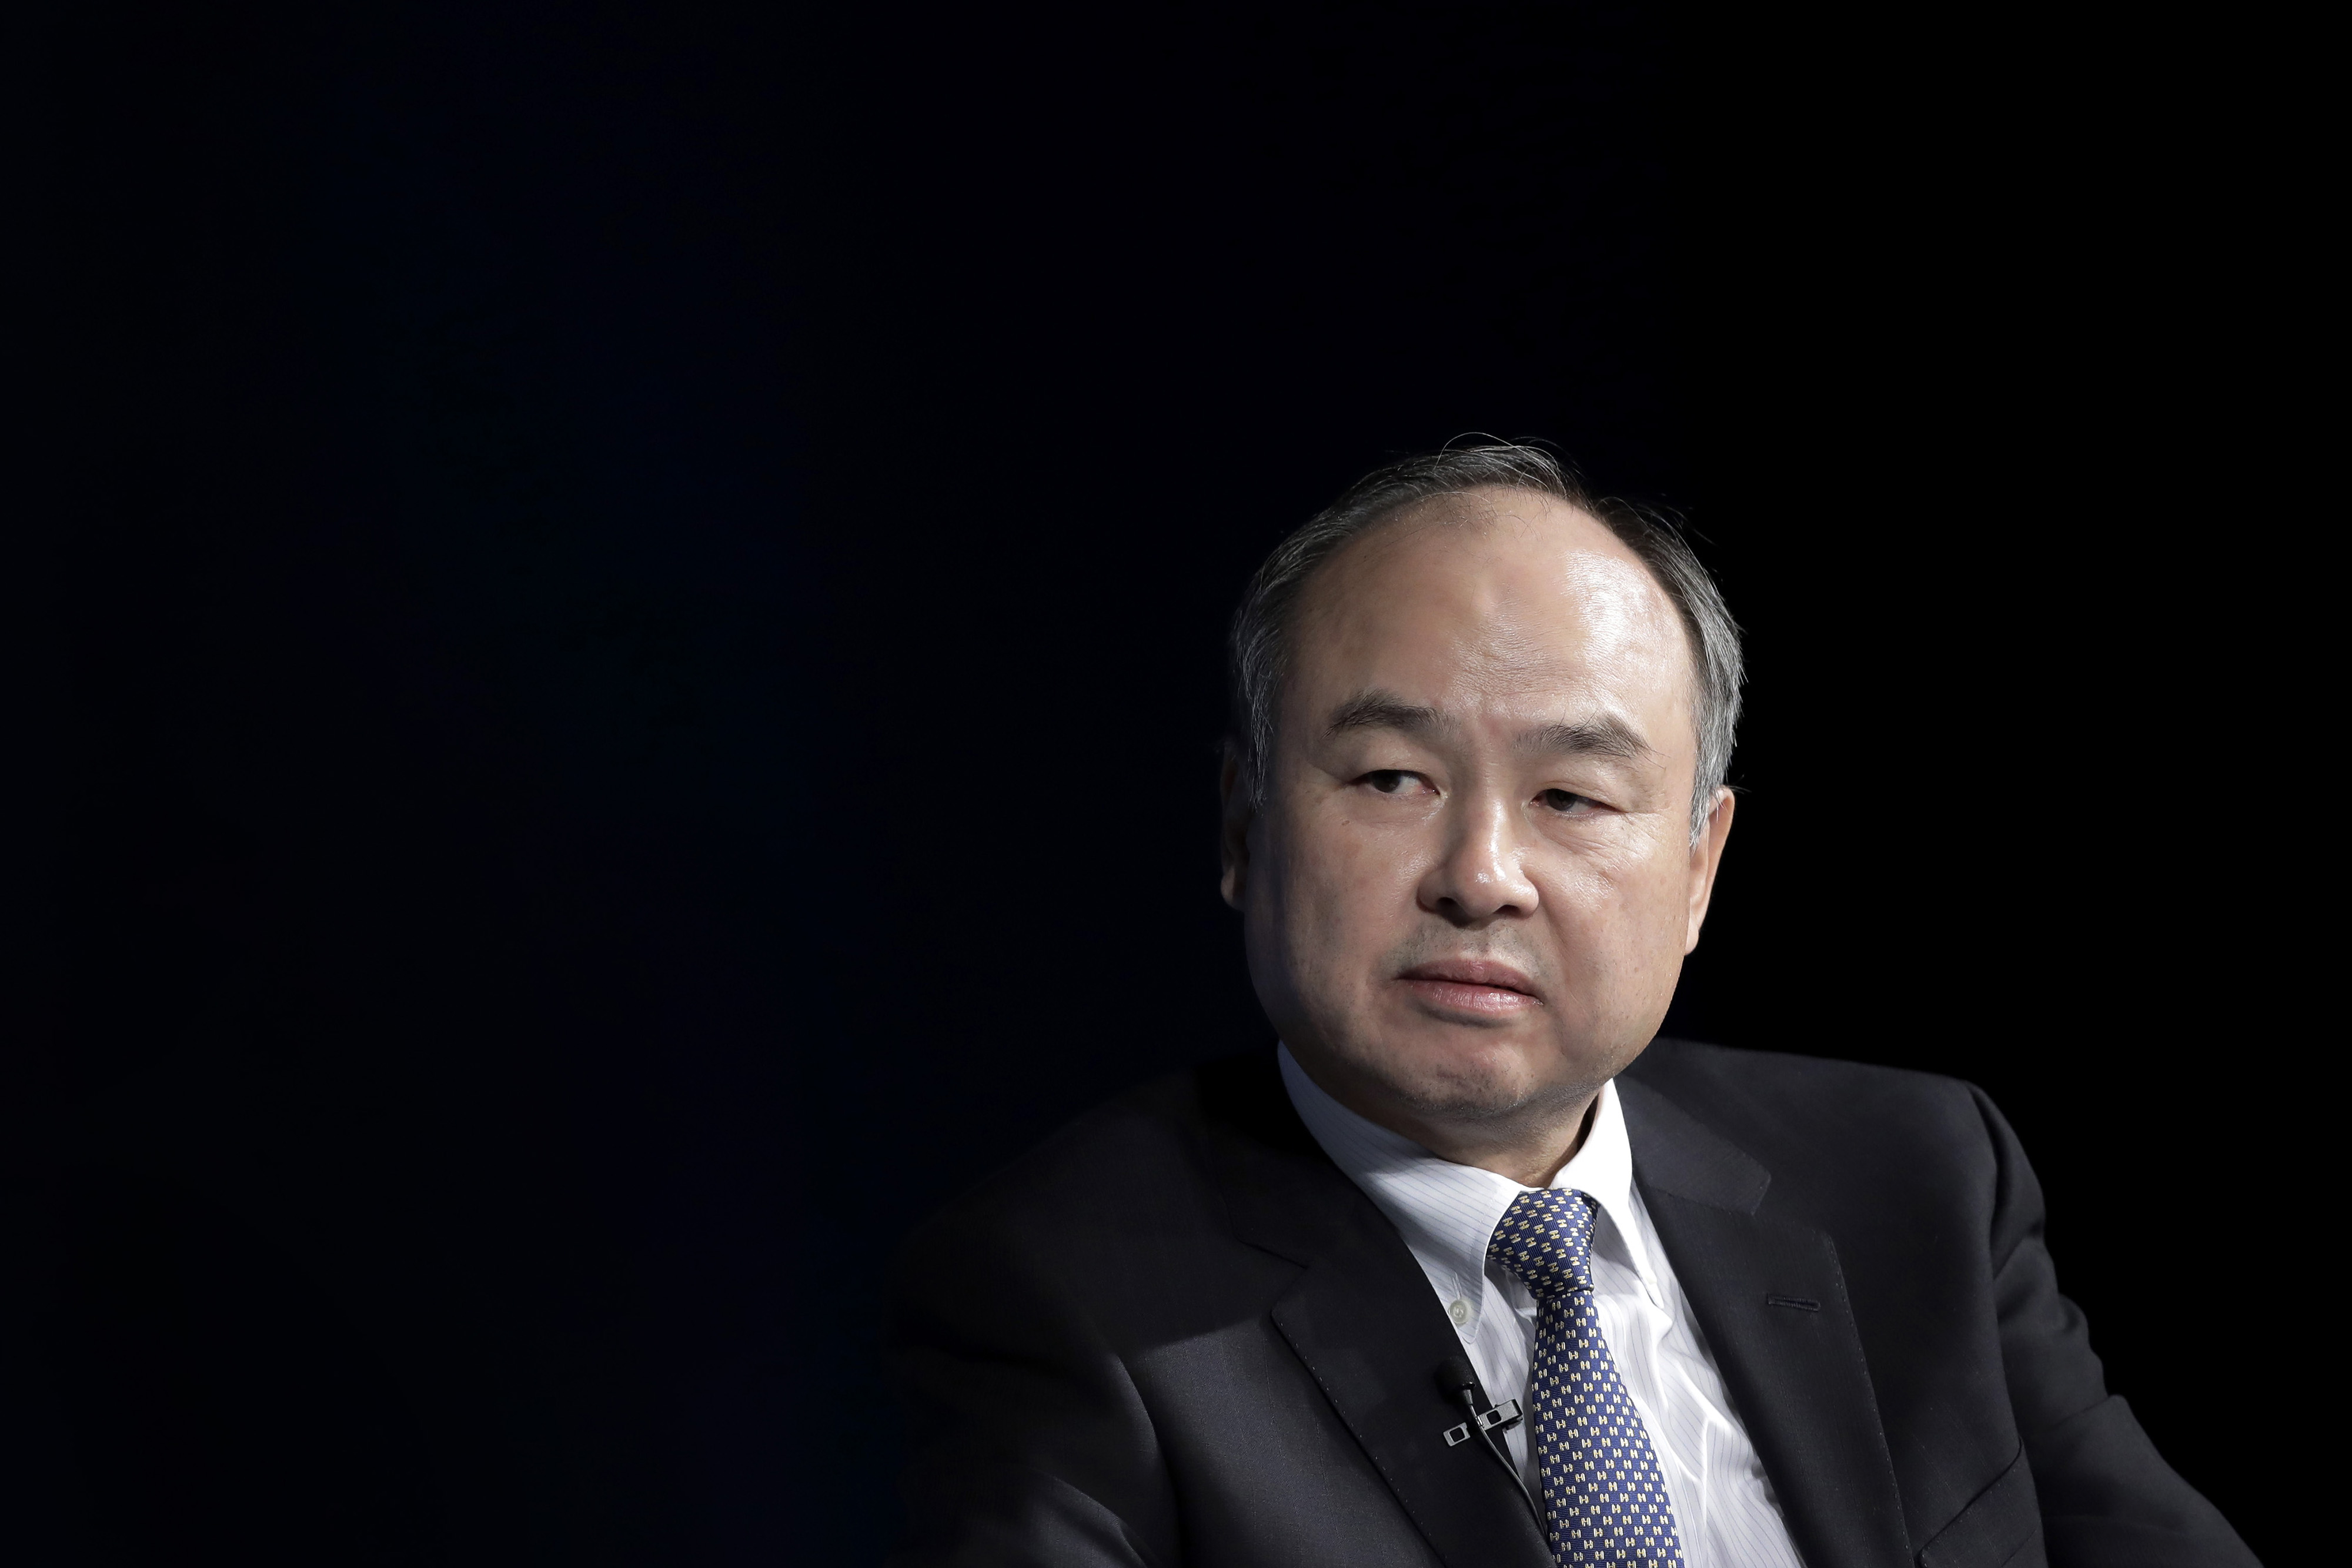 You're Not Going to Believe What Son Says SoftBank Is Worth